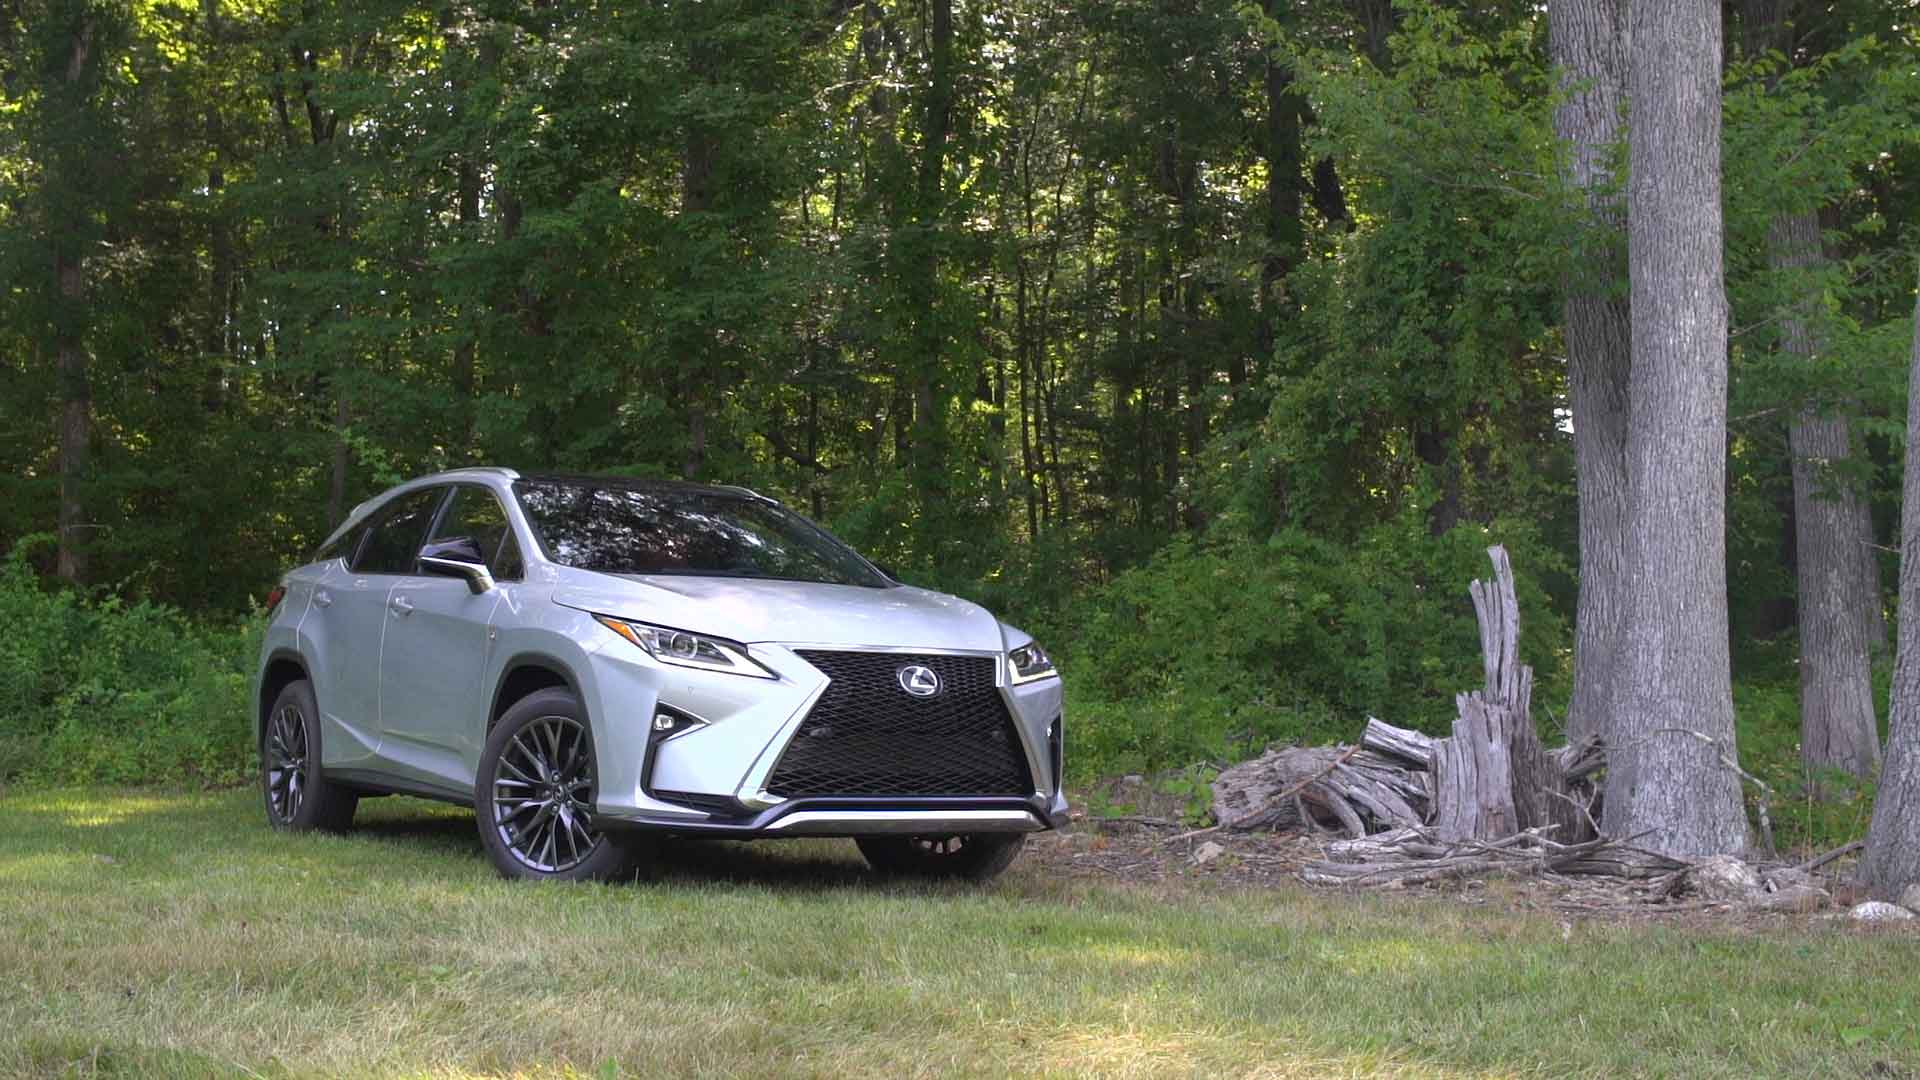 2016 lexus rx 350 and rx 450h review - consumer reports